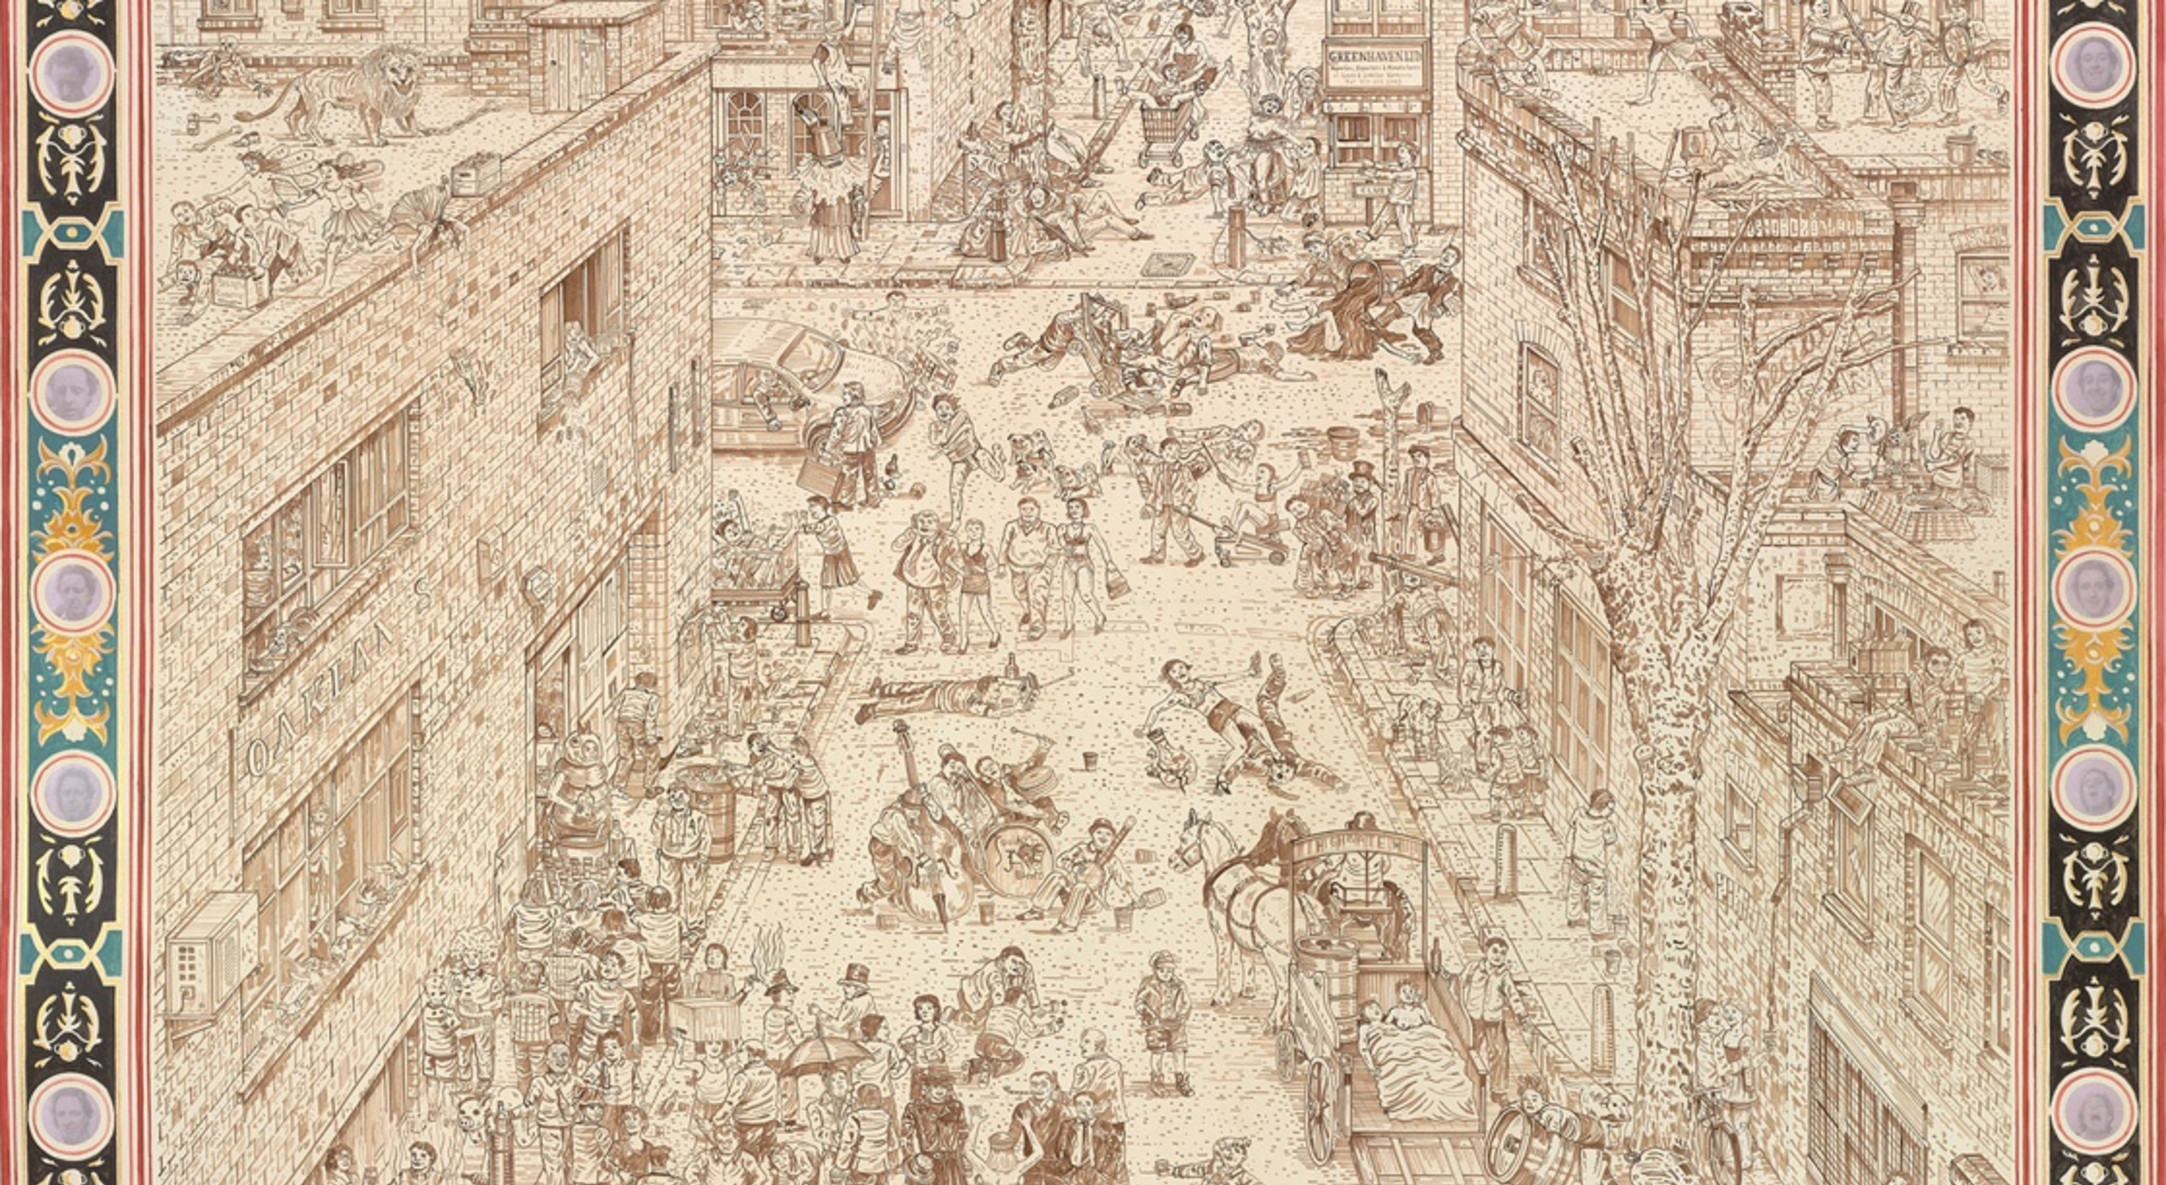 Detail of Adam Dant, British Drinking, 2010, Ink on paper, 200.5 x 256.5 cm, 79 x 101.06 in